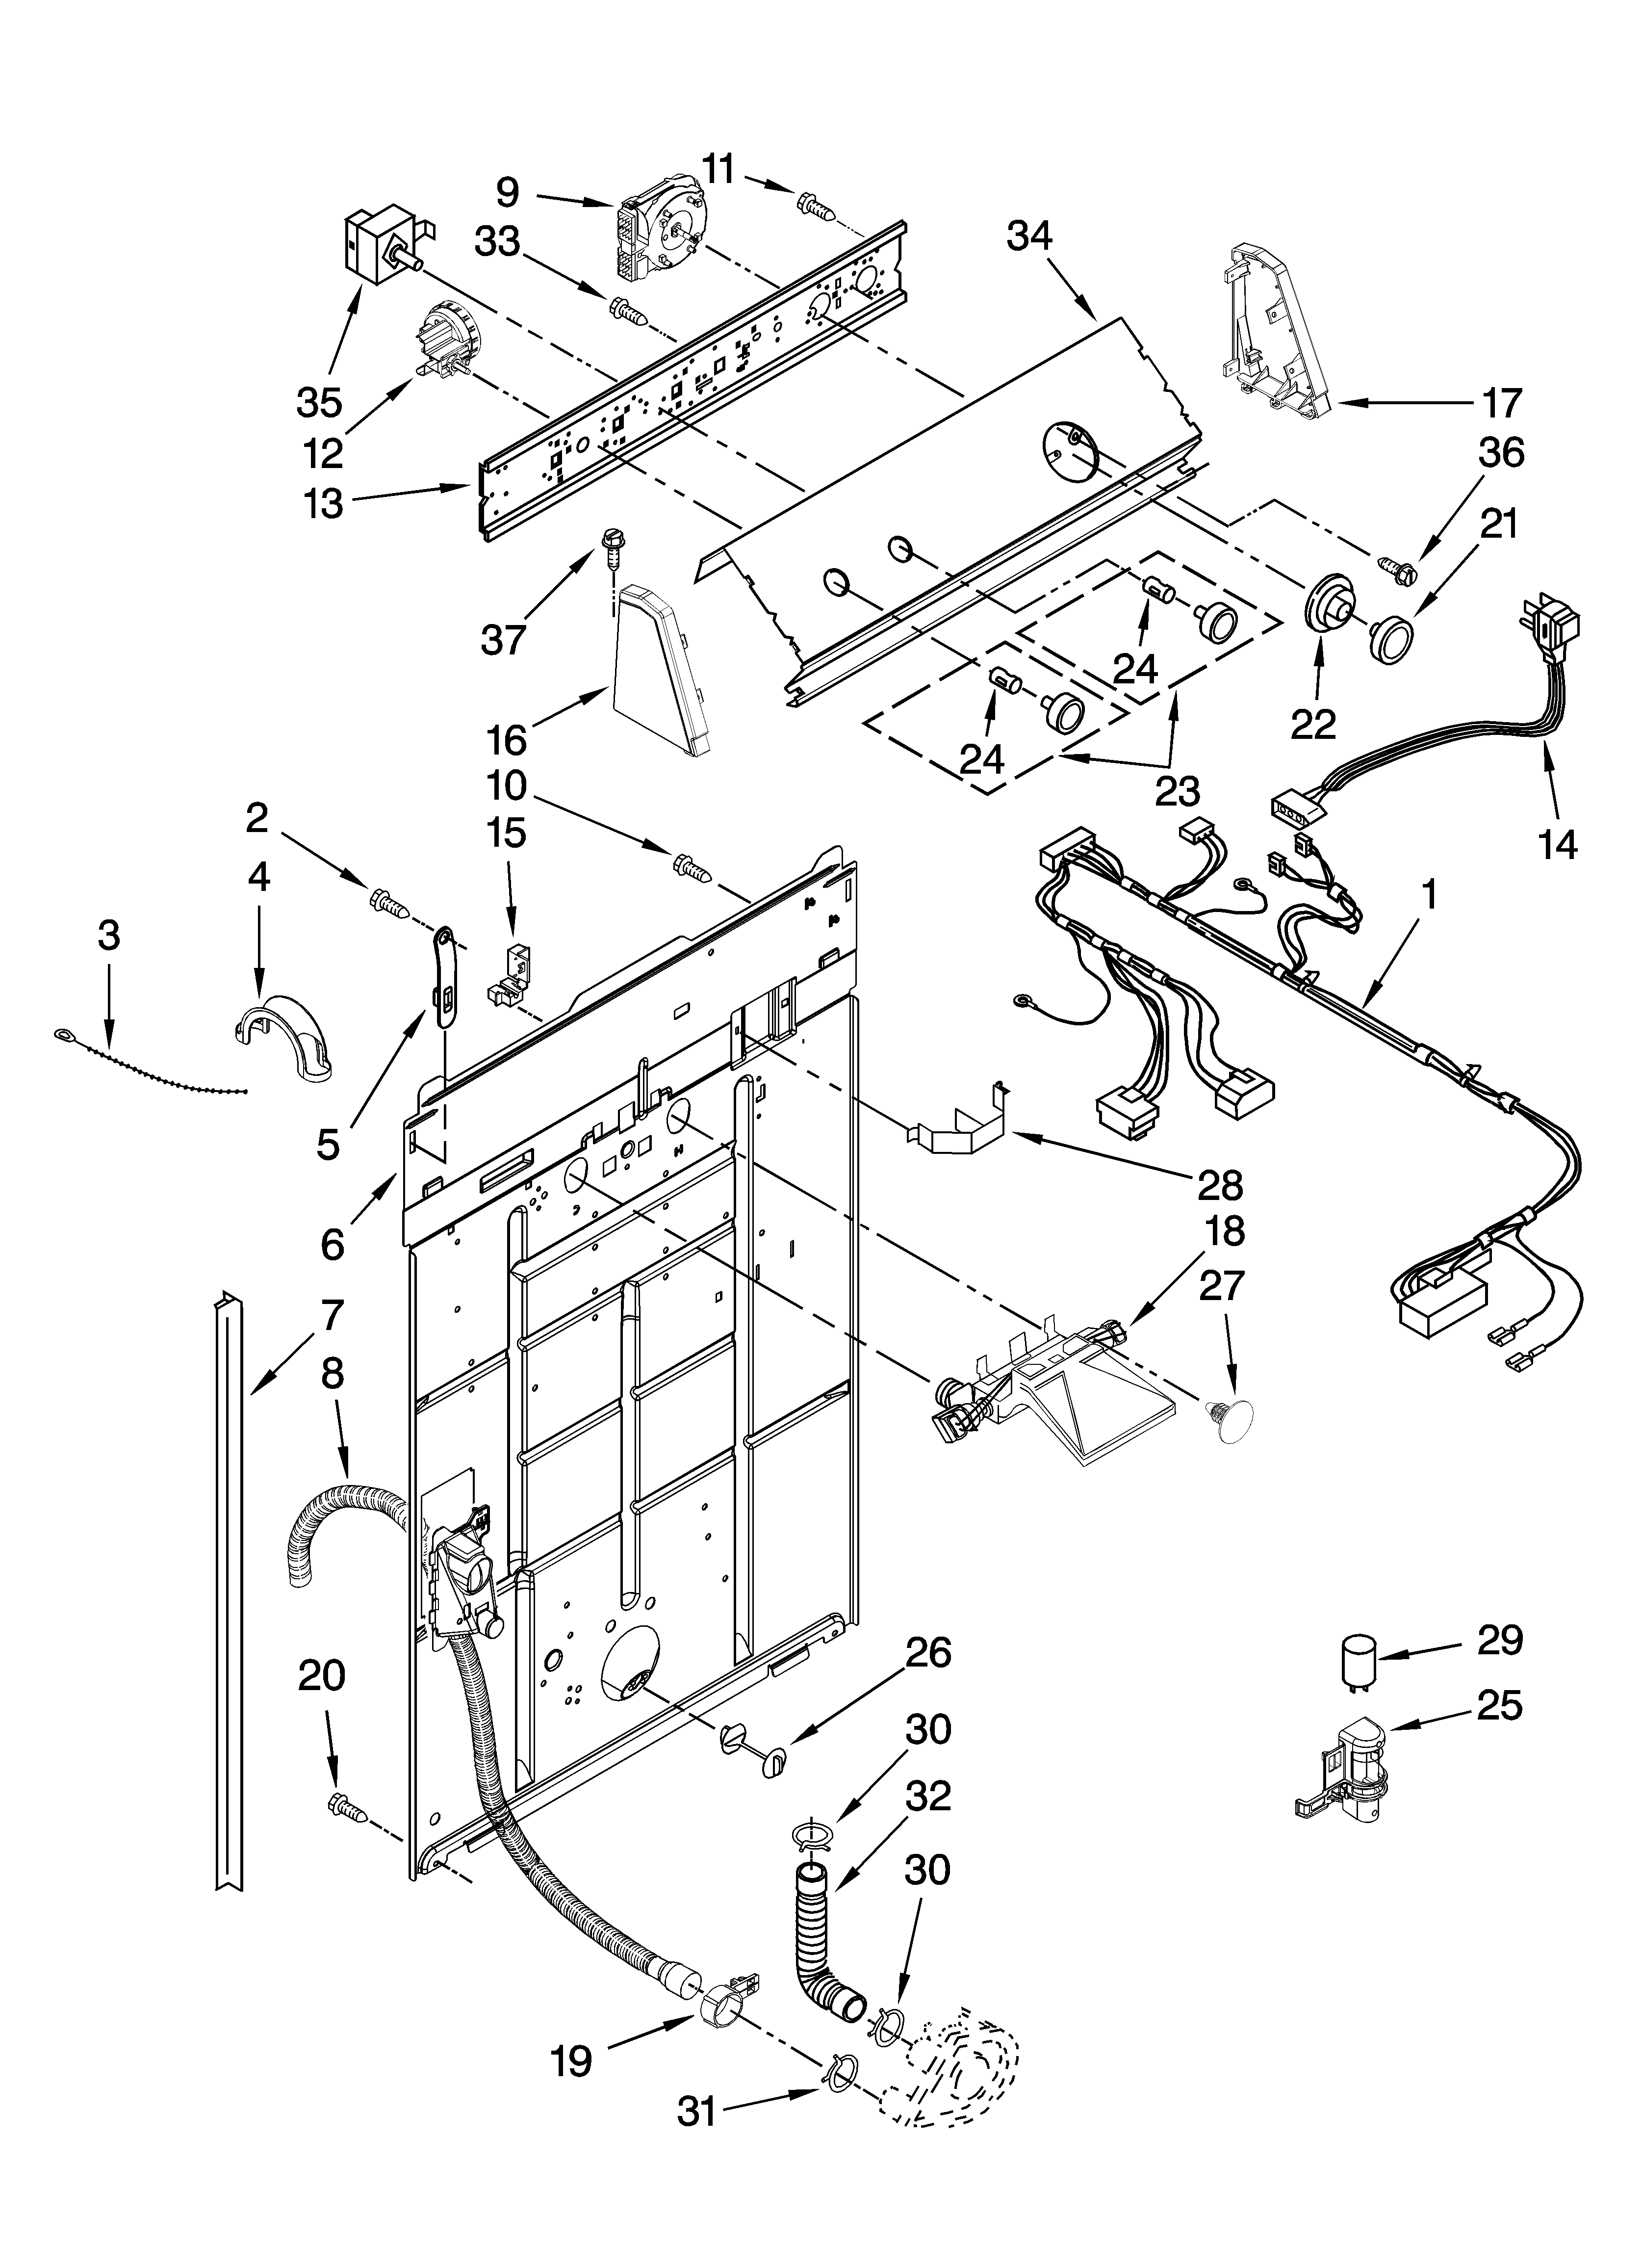 Controls and rear panel parts